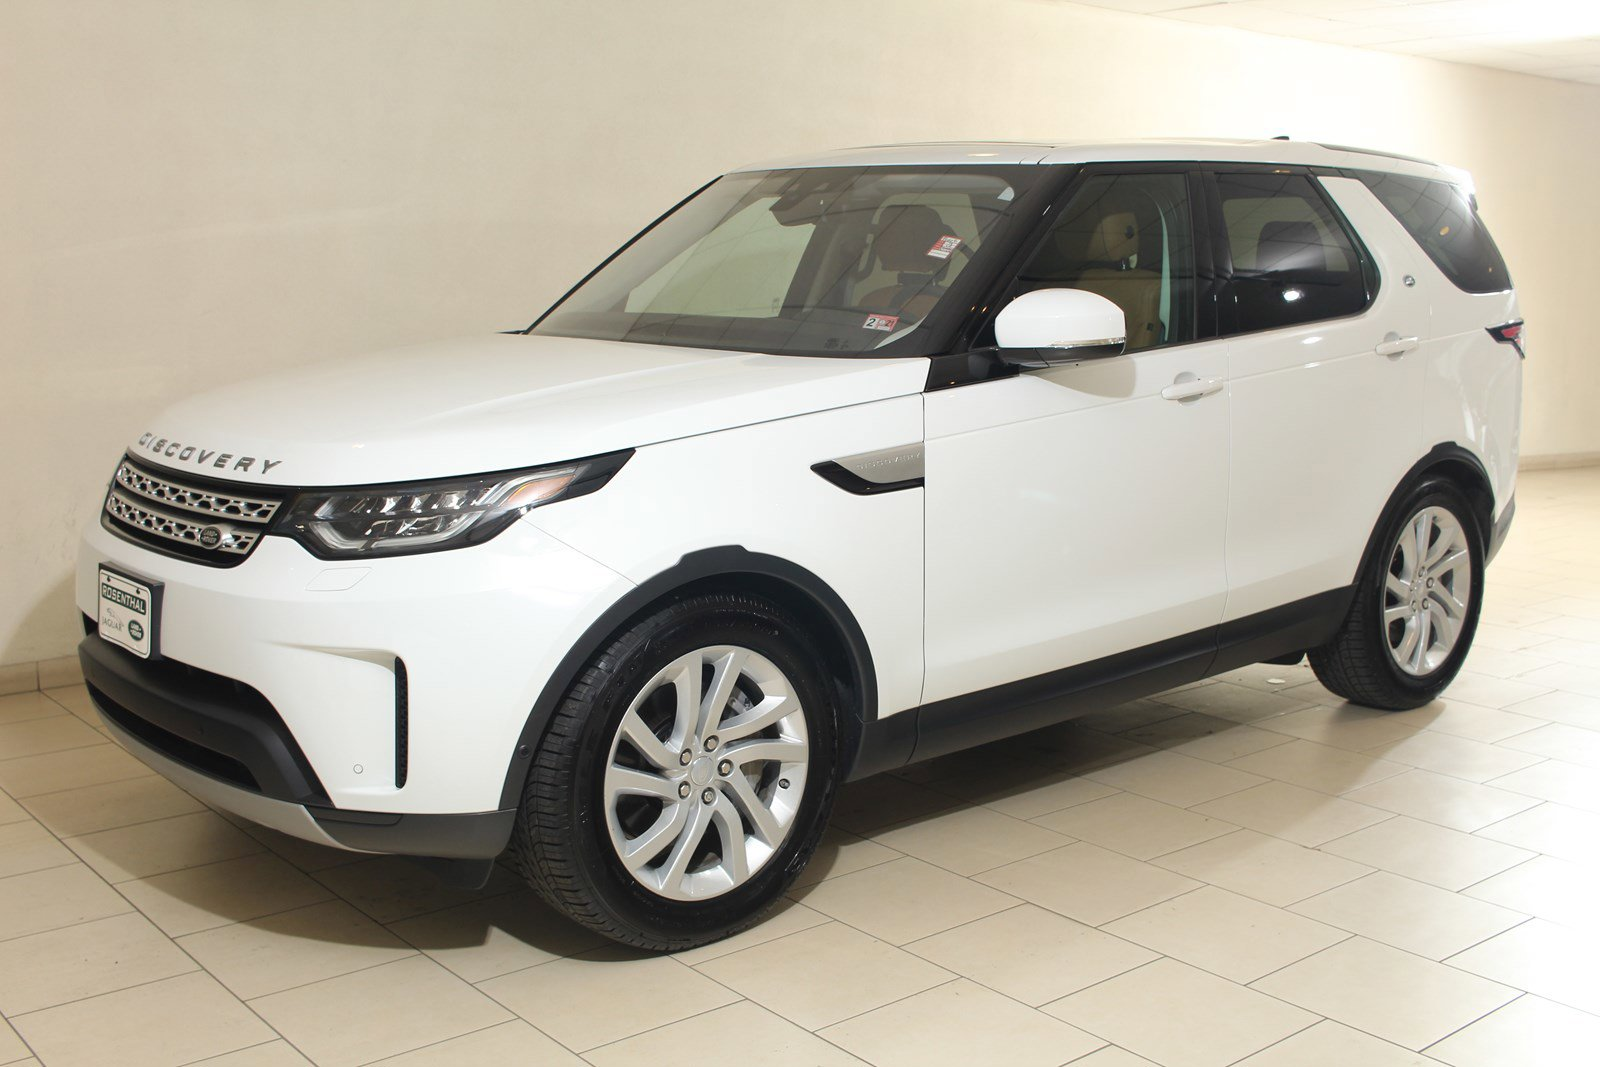 2019 Land Rover Discovery HSE image